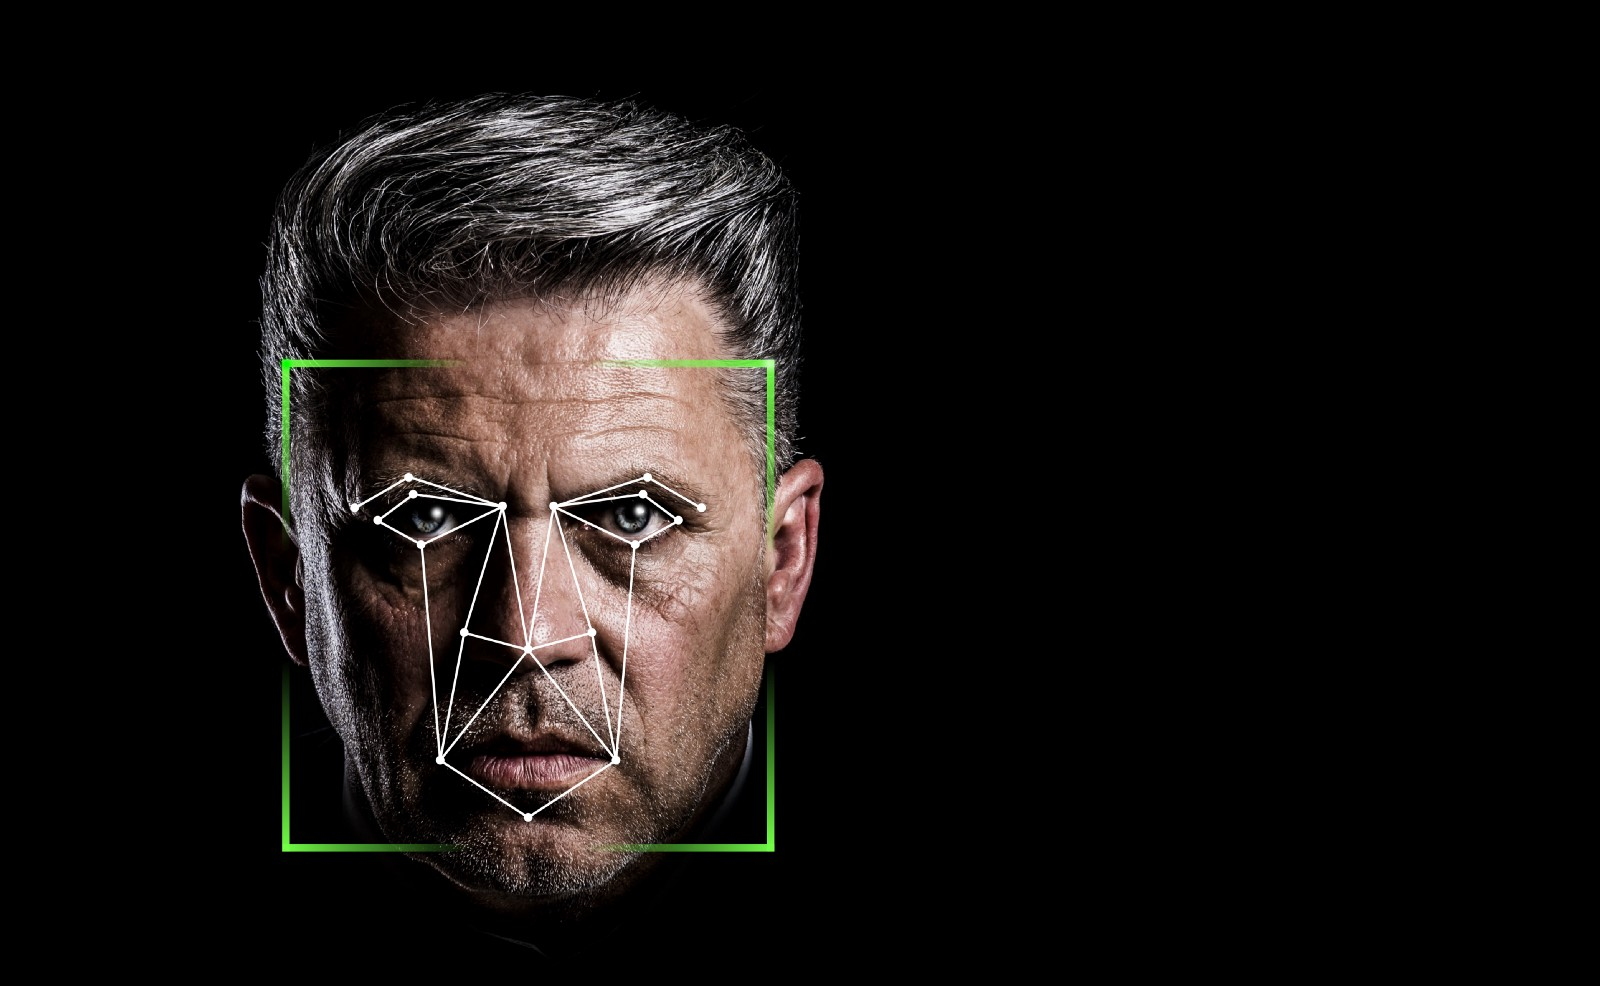 Face Recognition using One-Shot Learning